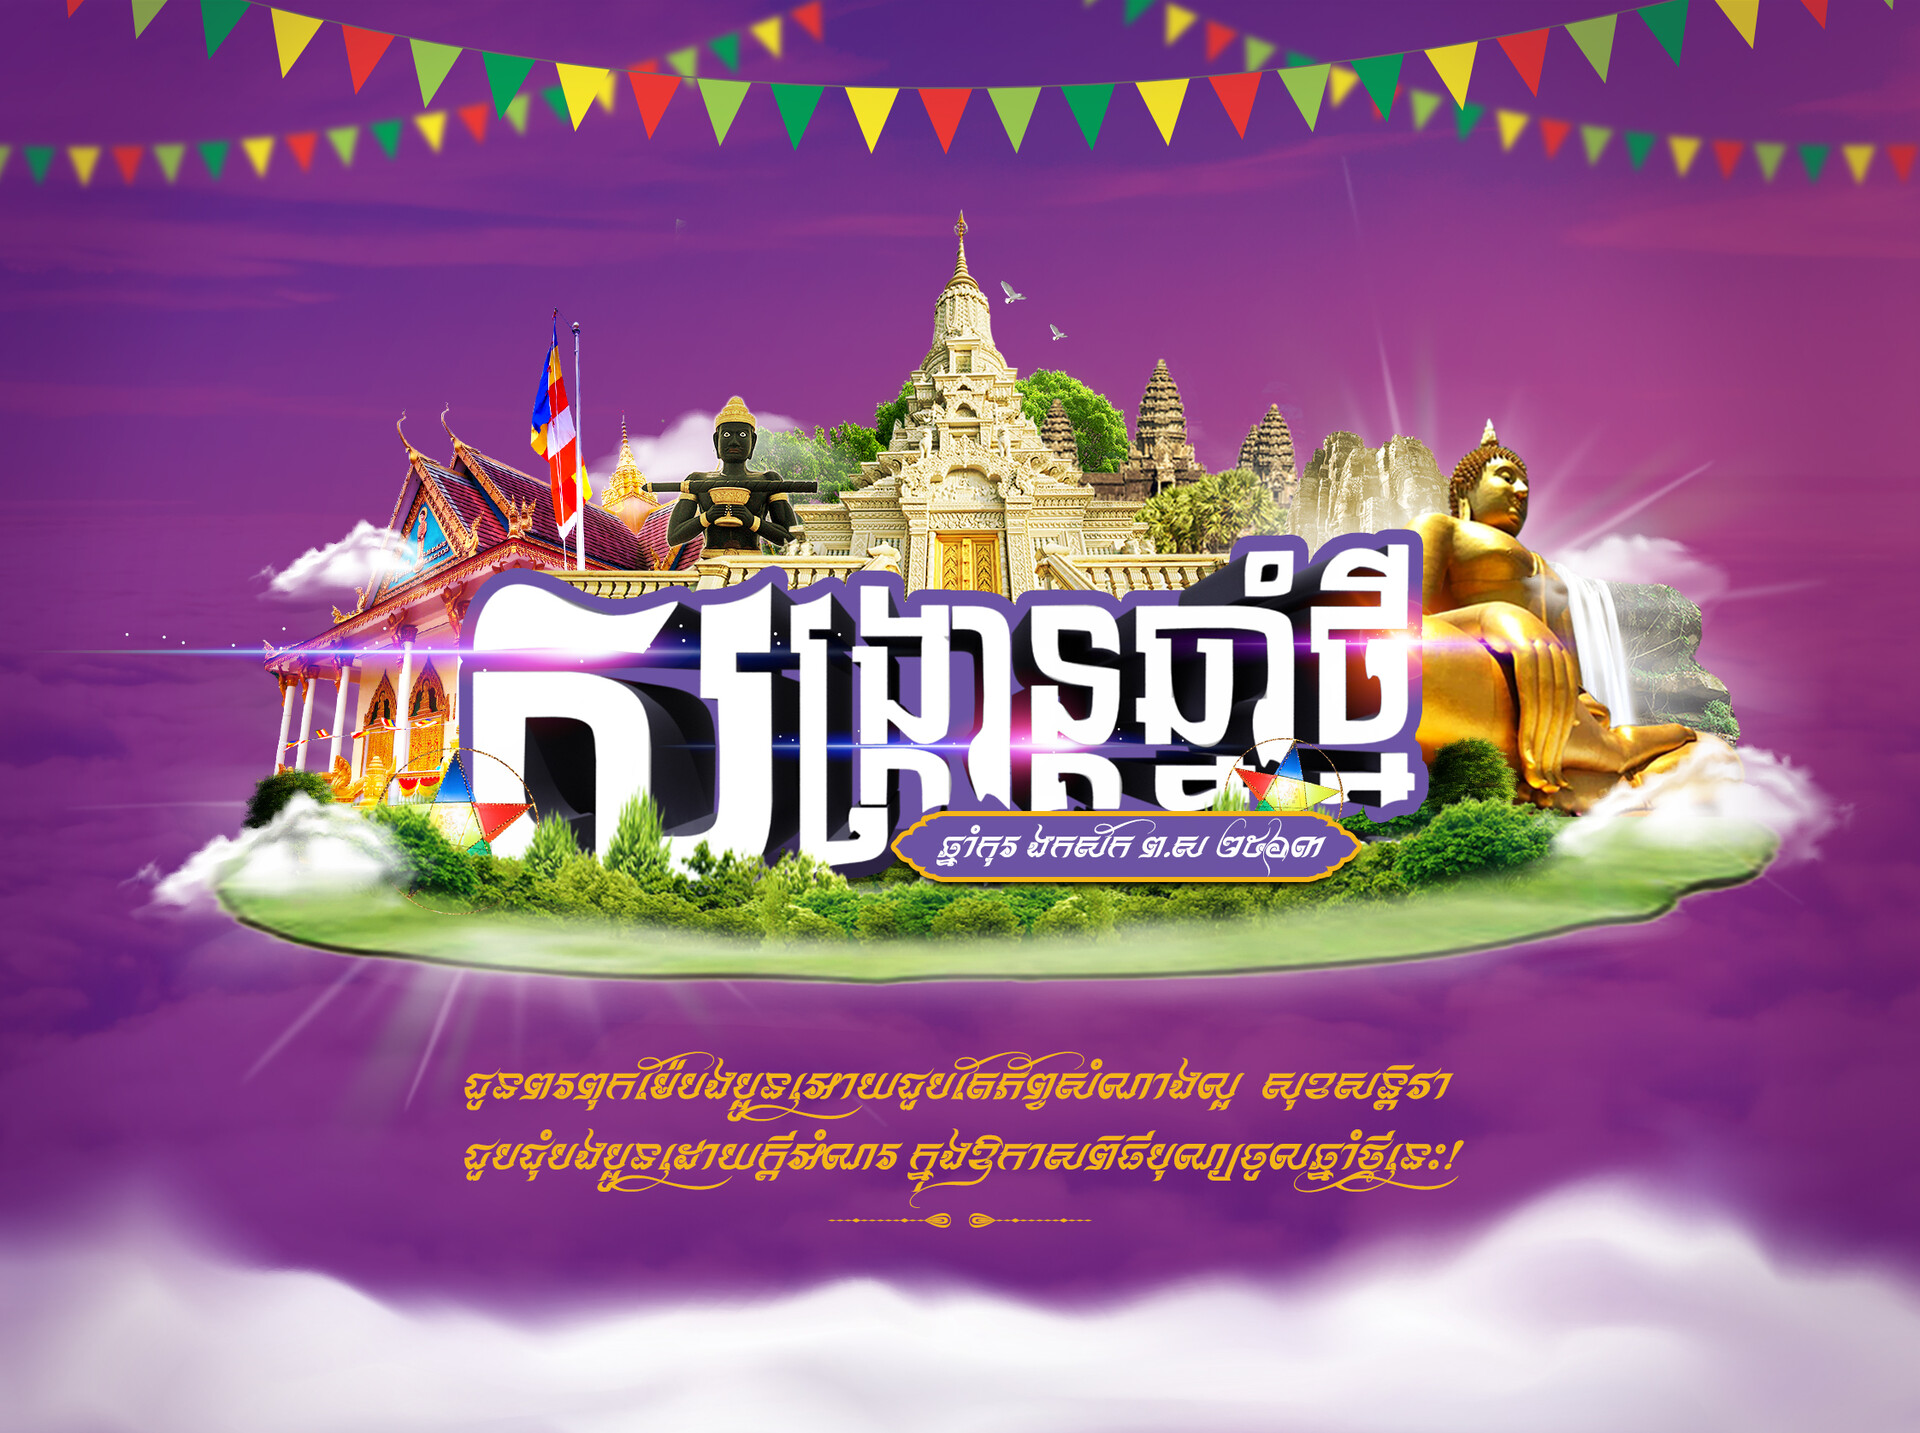 ArtStation - Khmer New year 2019, Chanrin Mao